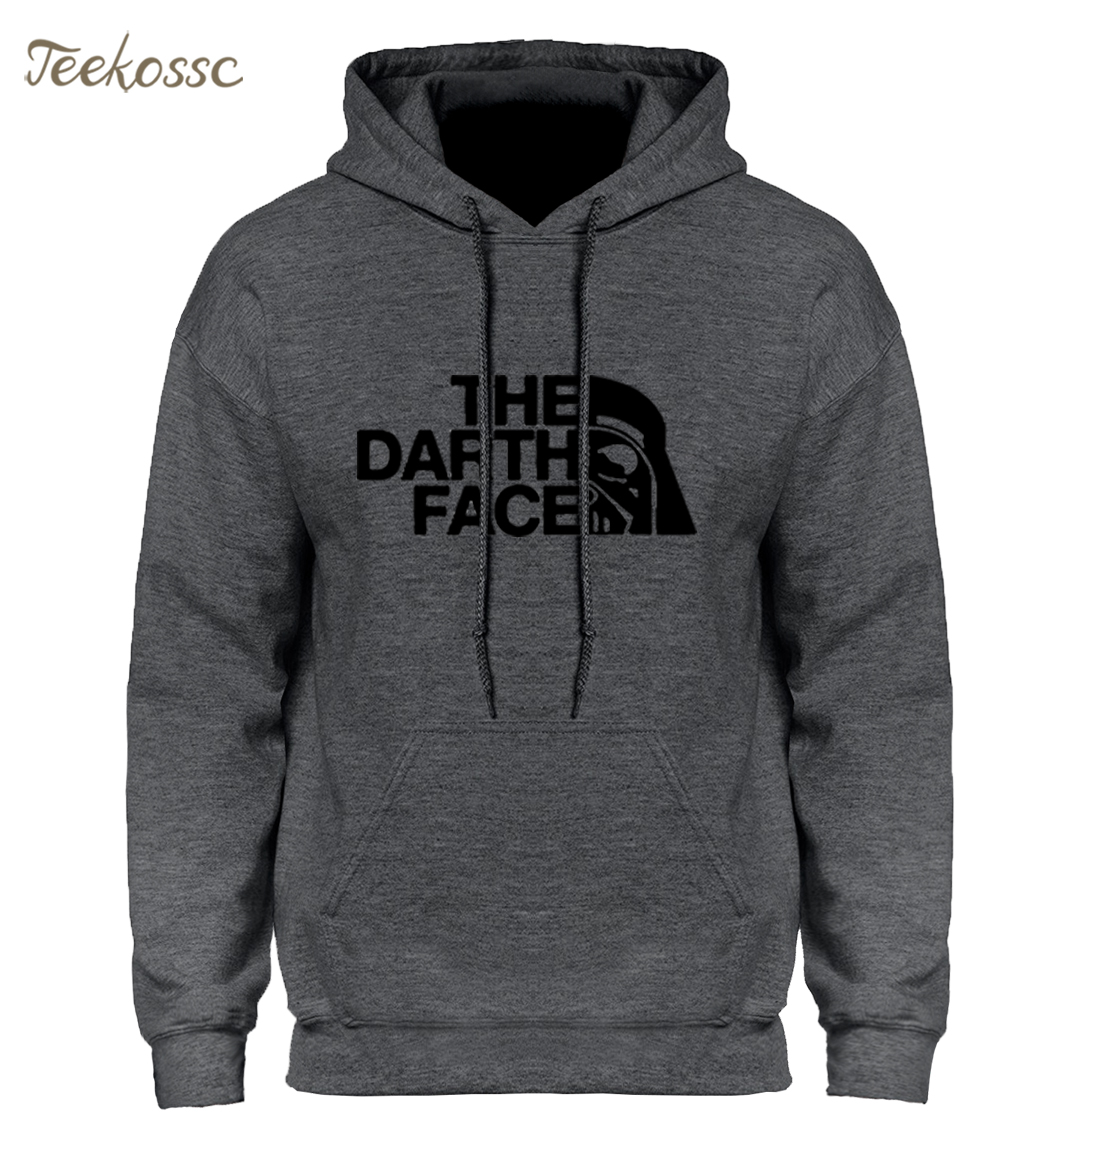 Star Wars Darth Face Hoodie Hoodies Sweatshirt Men 2018 New Spring Autumn Hooded Faces No Face Streetwear Homme Black Gray Hoody(China)